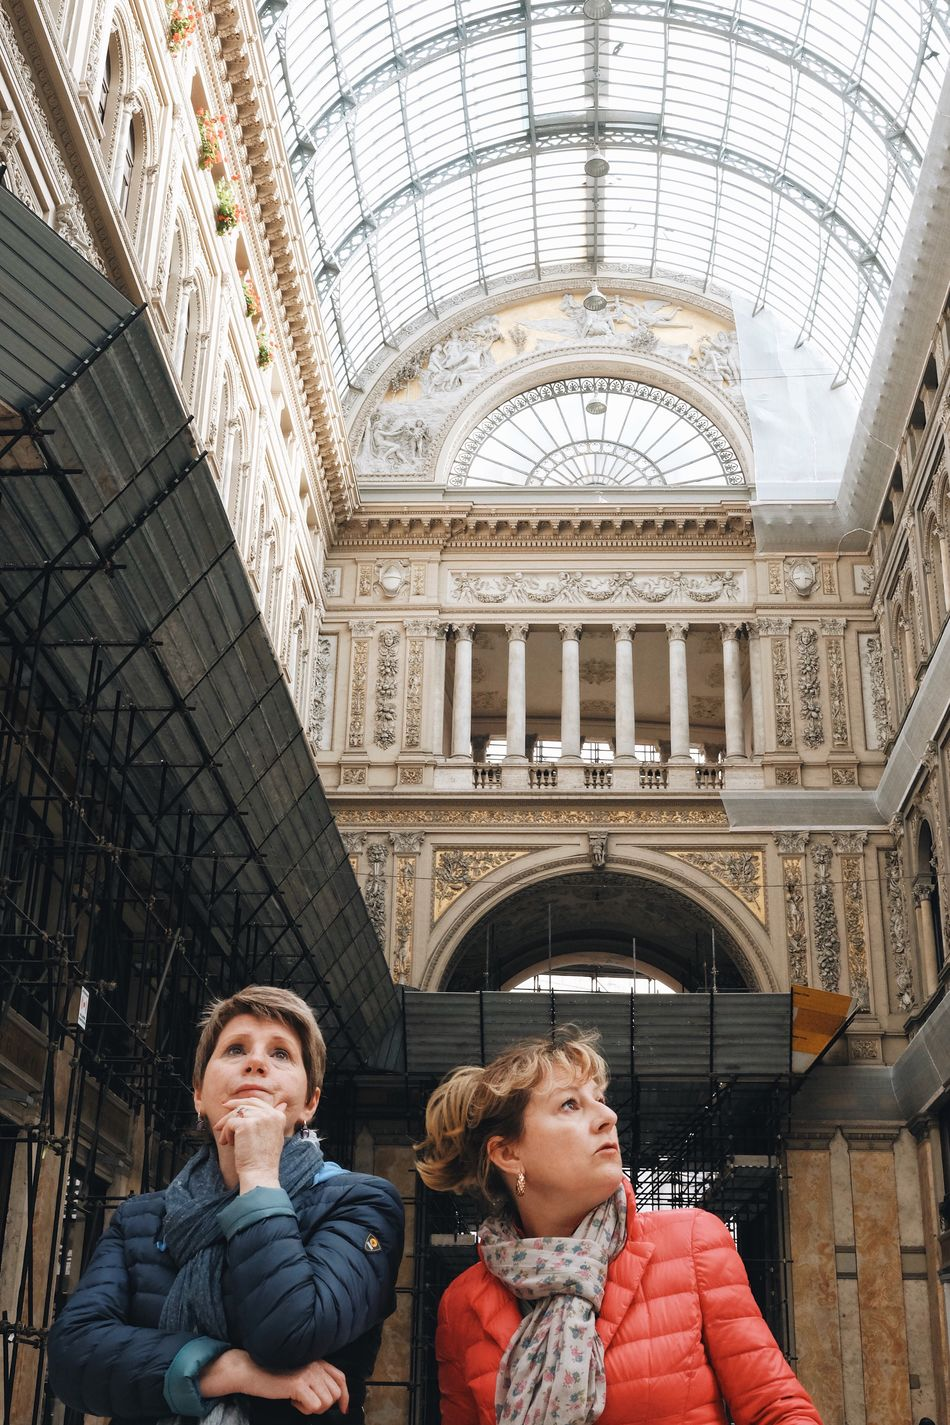 Where's the arcade? Travel Destinations Two People Architecture Travel Tourism Cultures Built Structure City History Tourist People Indoors  Togetherness Real People Dome Day Victorian Style Adult Adults Only